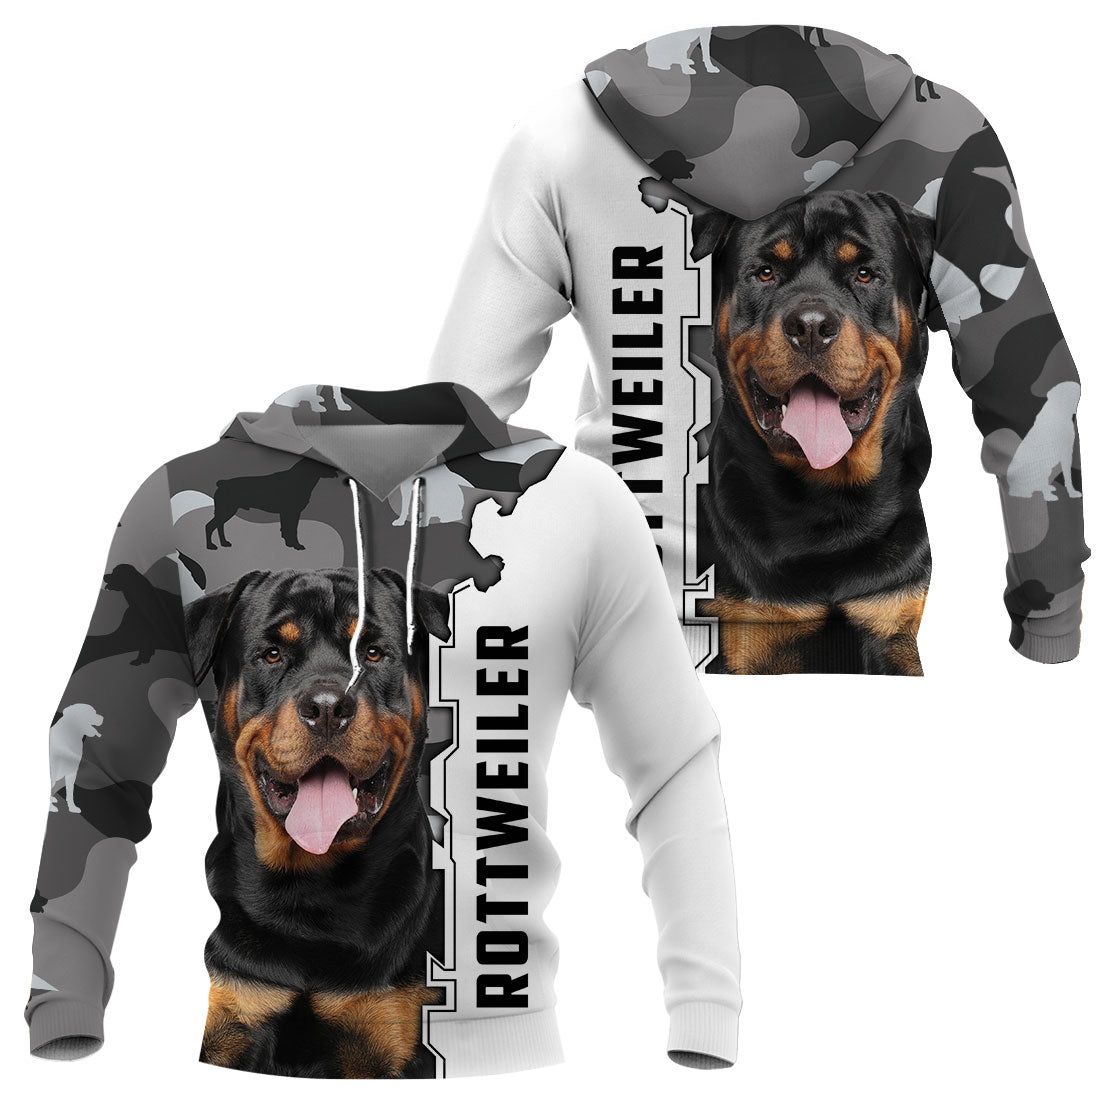 3D Apparel - Gray camouflage - Rottweiler